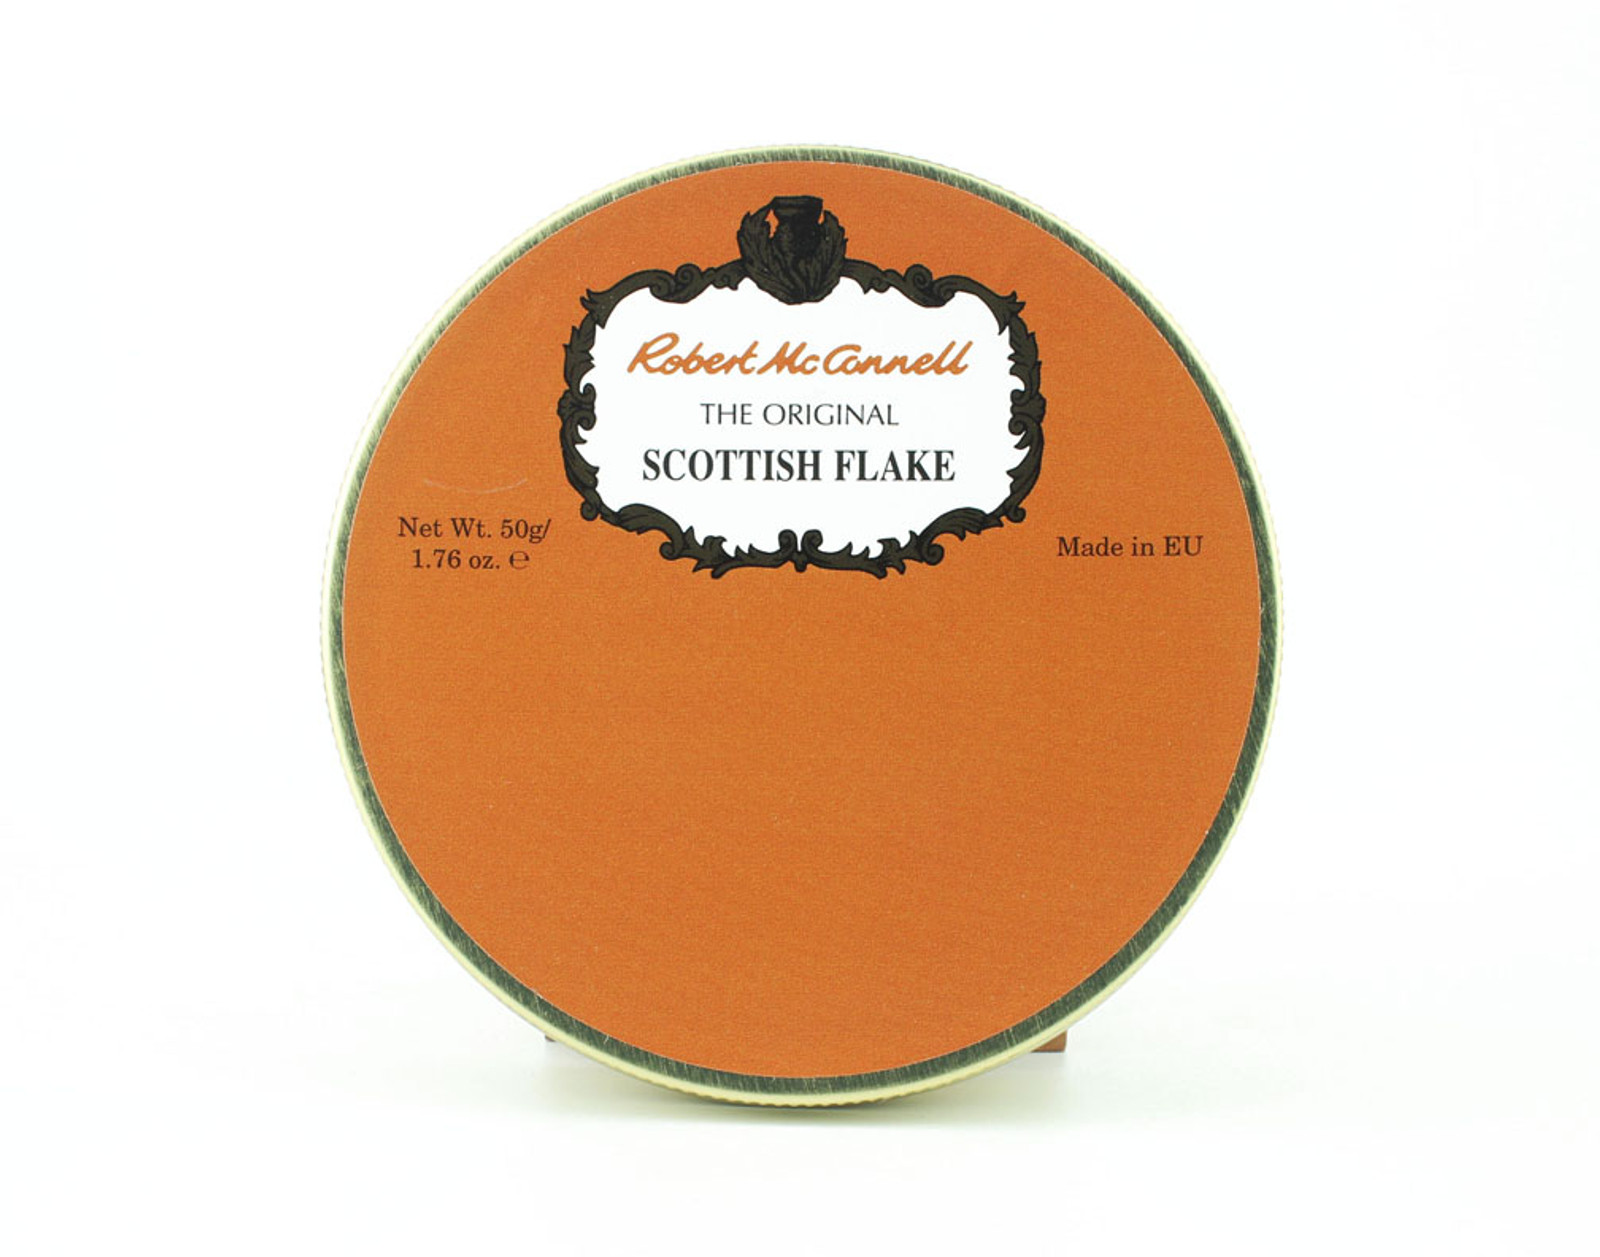 Robert McConnell Scottish Flake (50g tin)